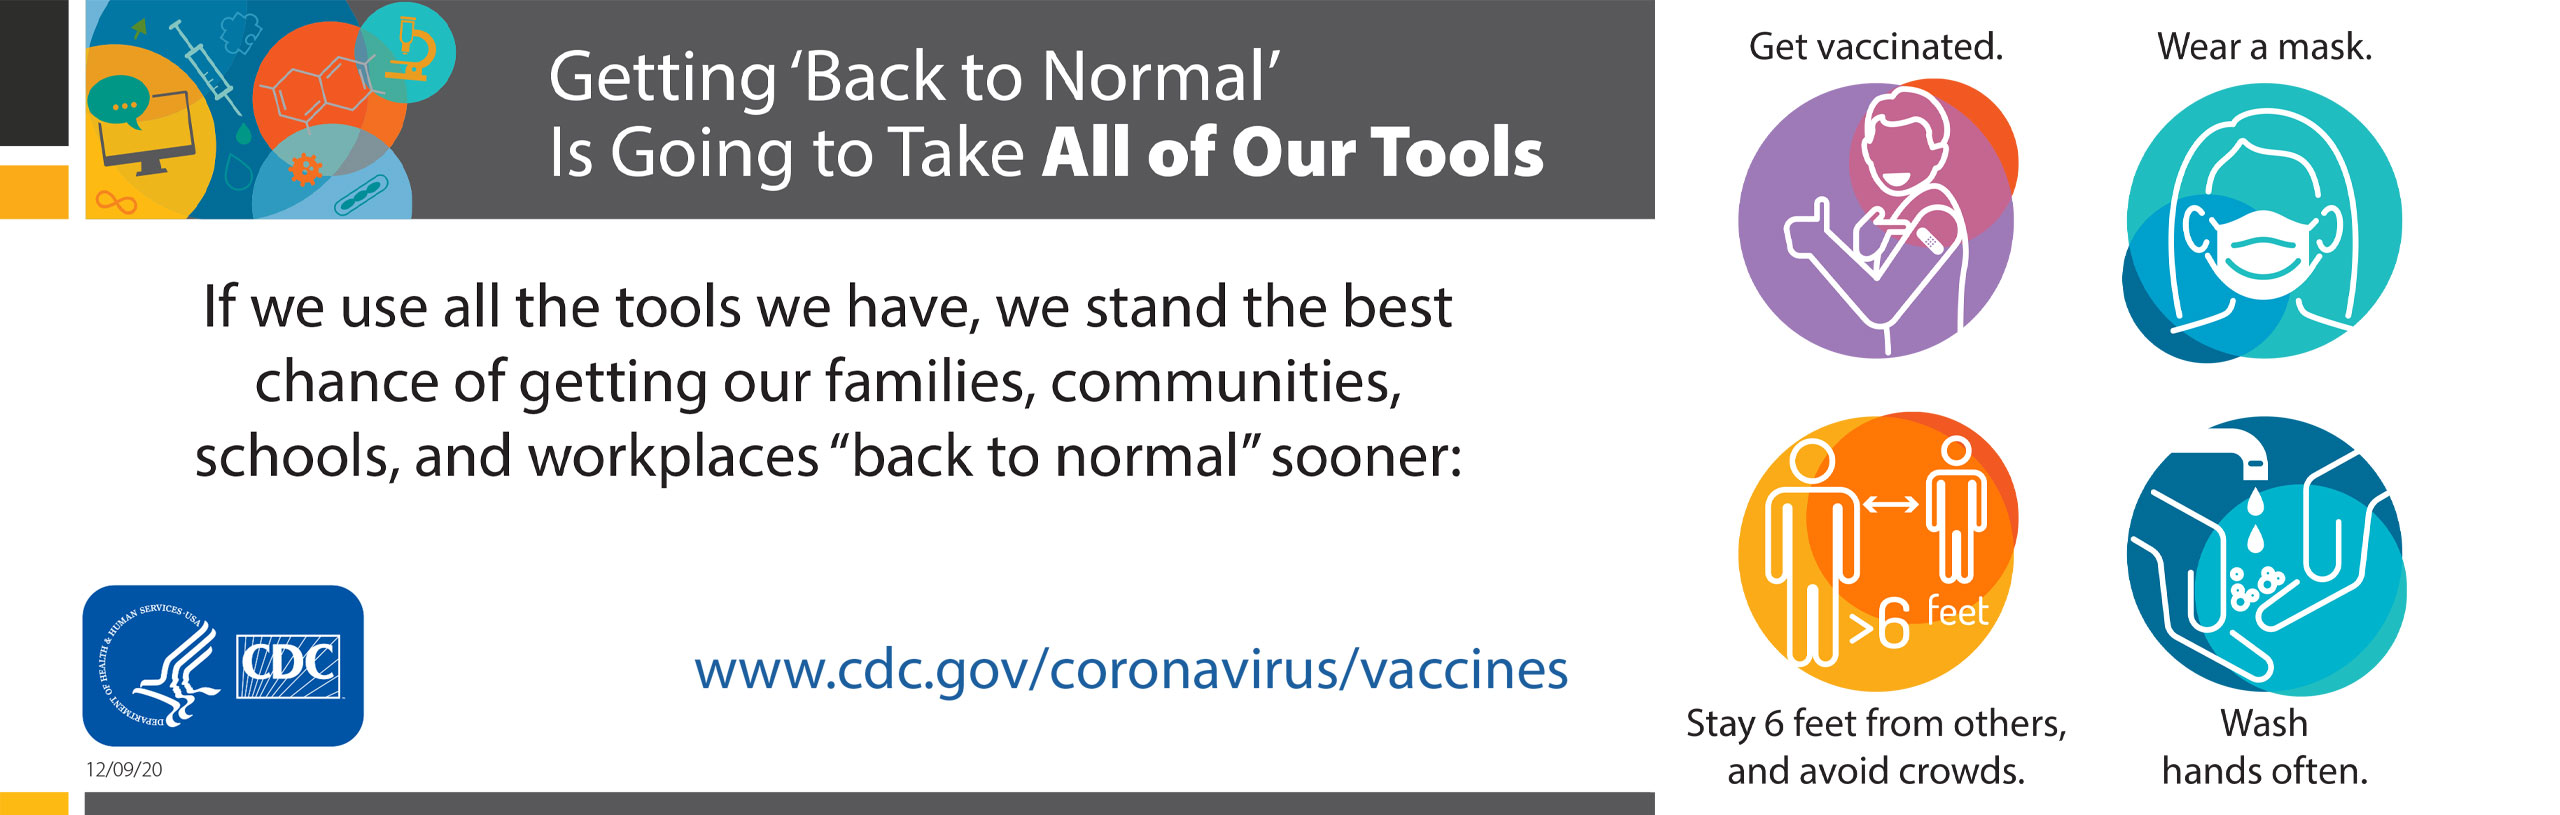 """Getting 'Back to Normal' is going to take all of our tools. If we use all the tools we have, we stand the best chance of getting our families, communities, schools, and workplaces """"back to normal"""" sooner."""